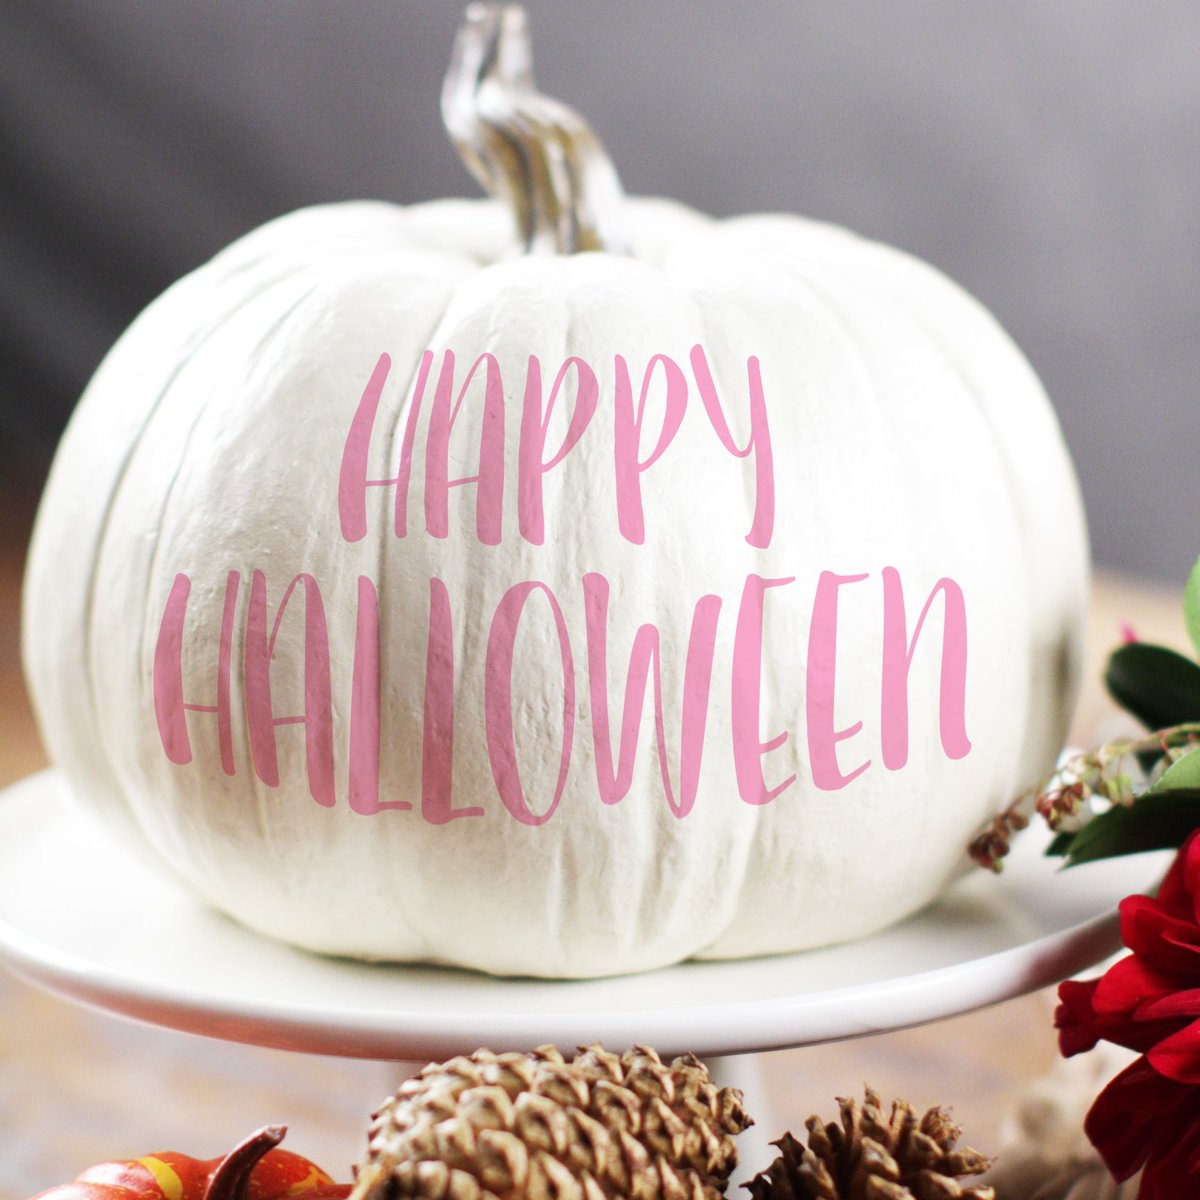 #HappyHalloween weekend from The BCA Campaign! #BCAstrength https://t.co/6m7yRsuJ8Z